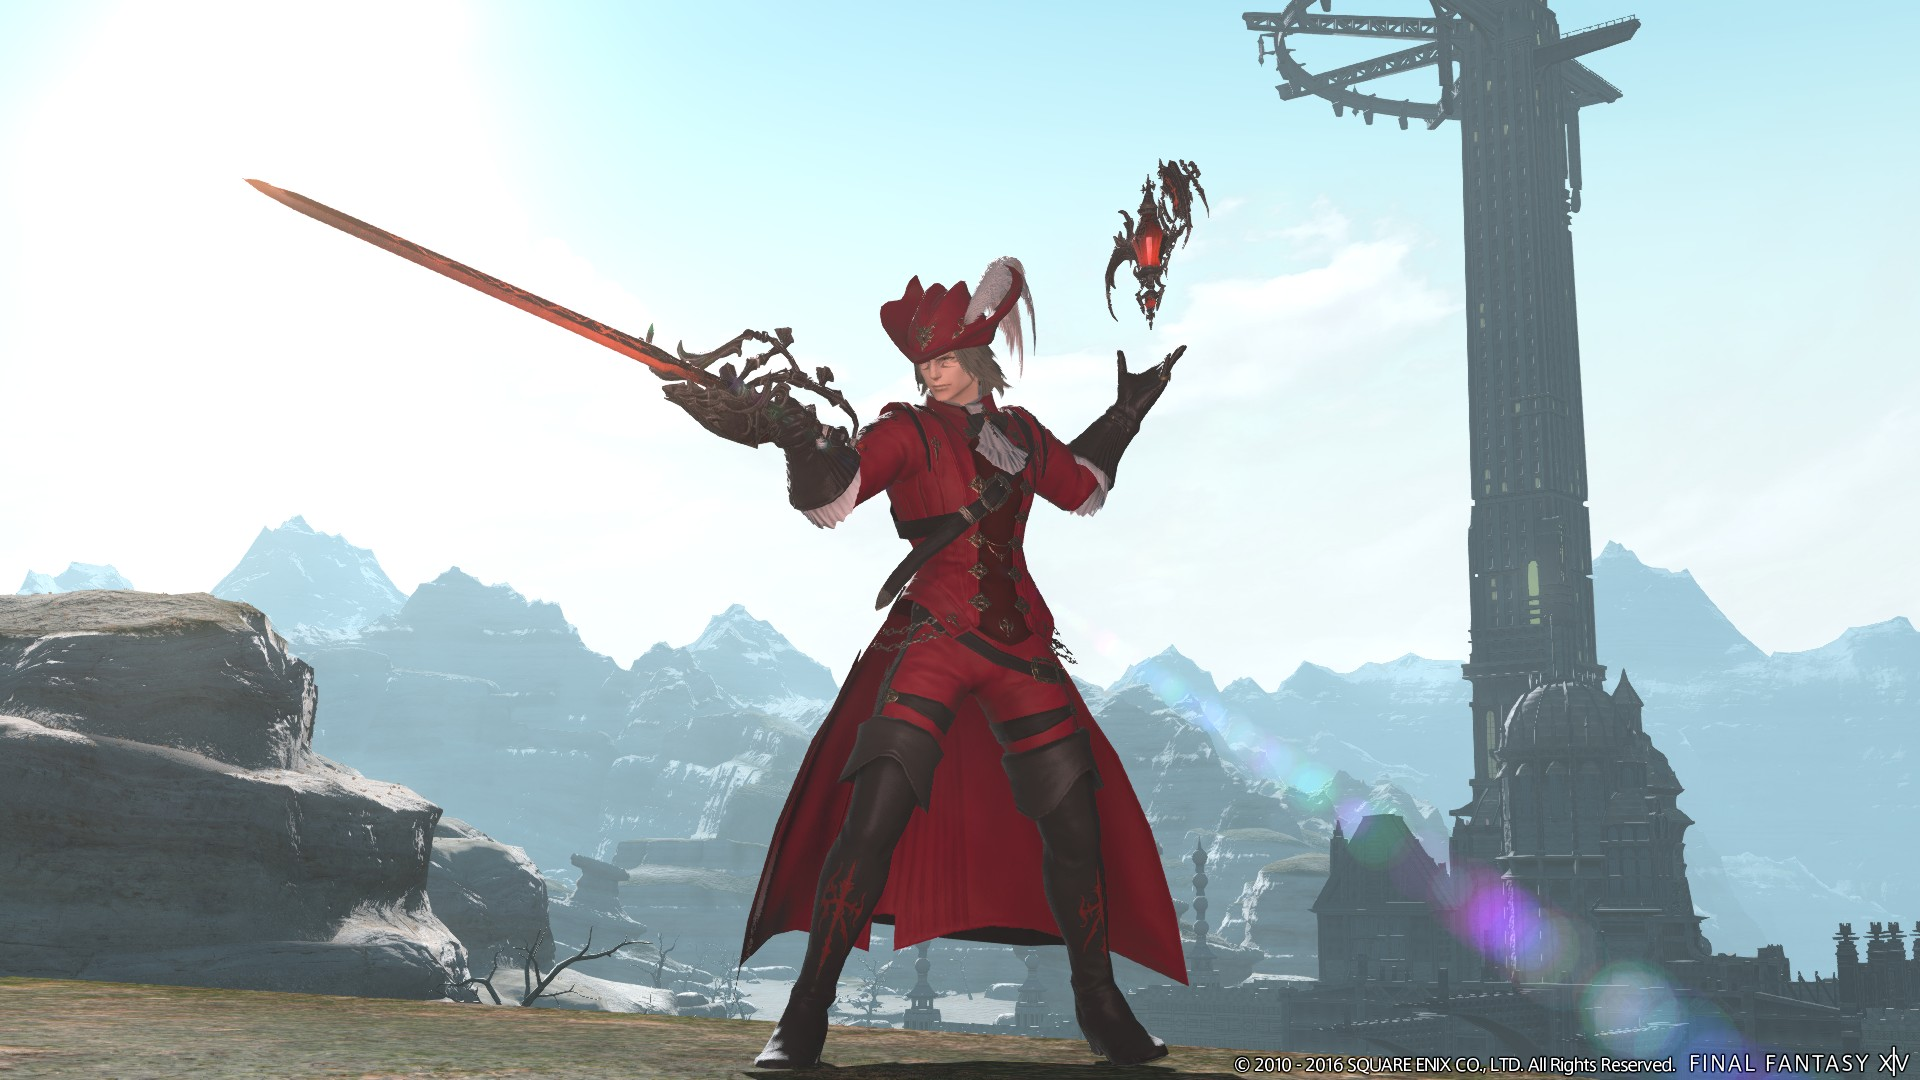 Watch Final Fantasy Xiv Stormblood S New Red Mage Job And